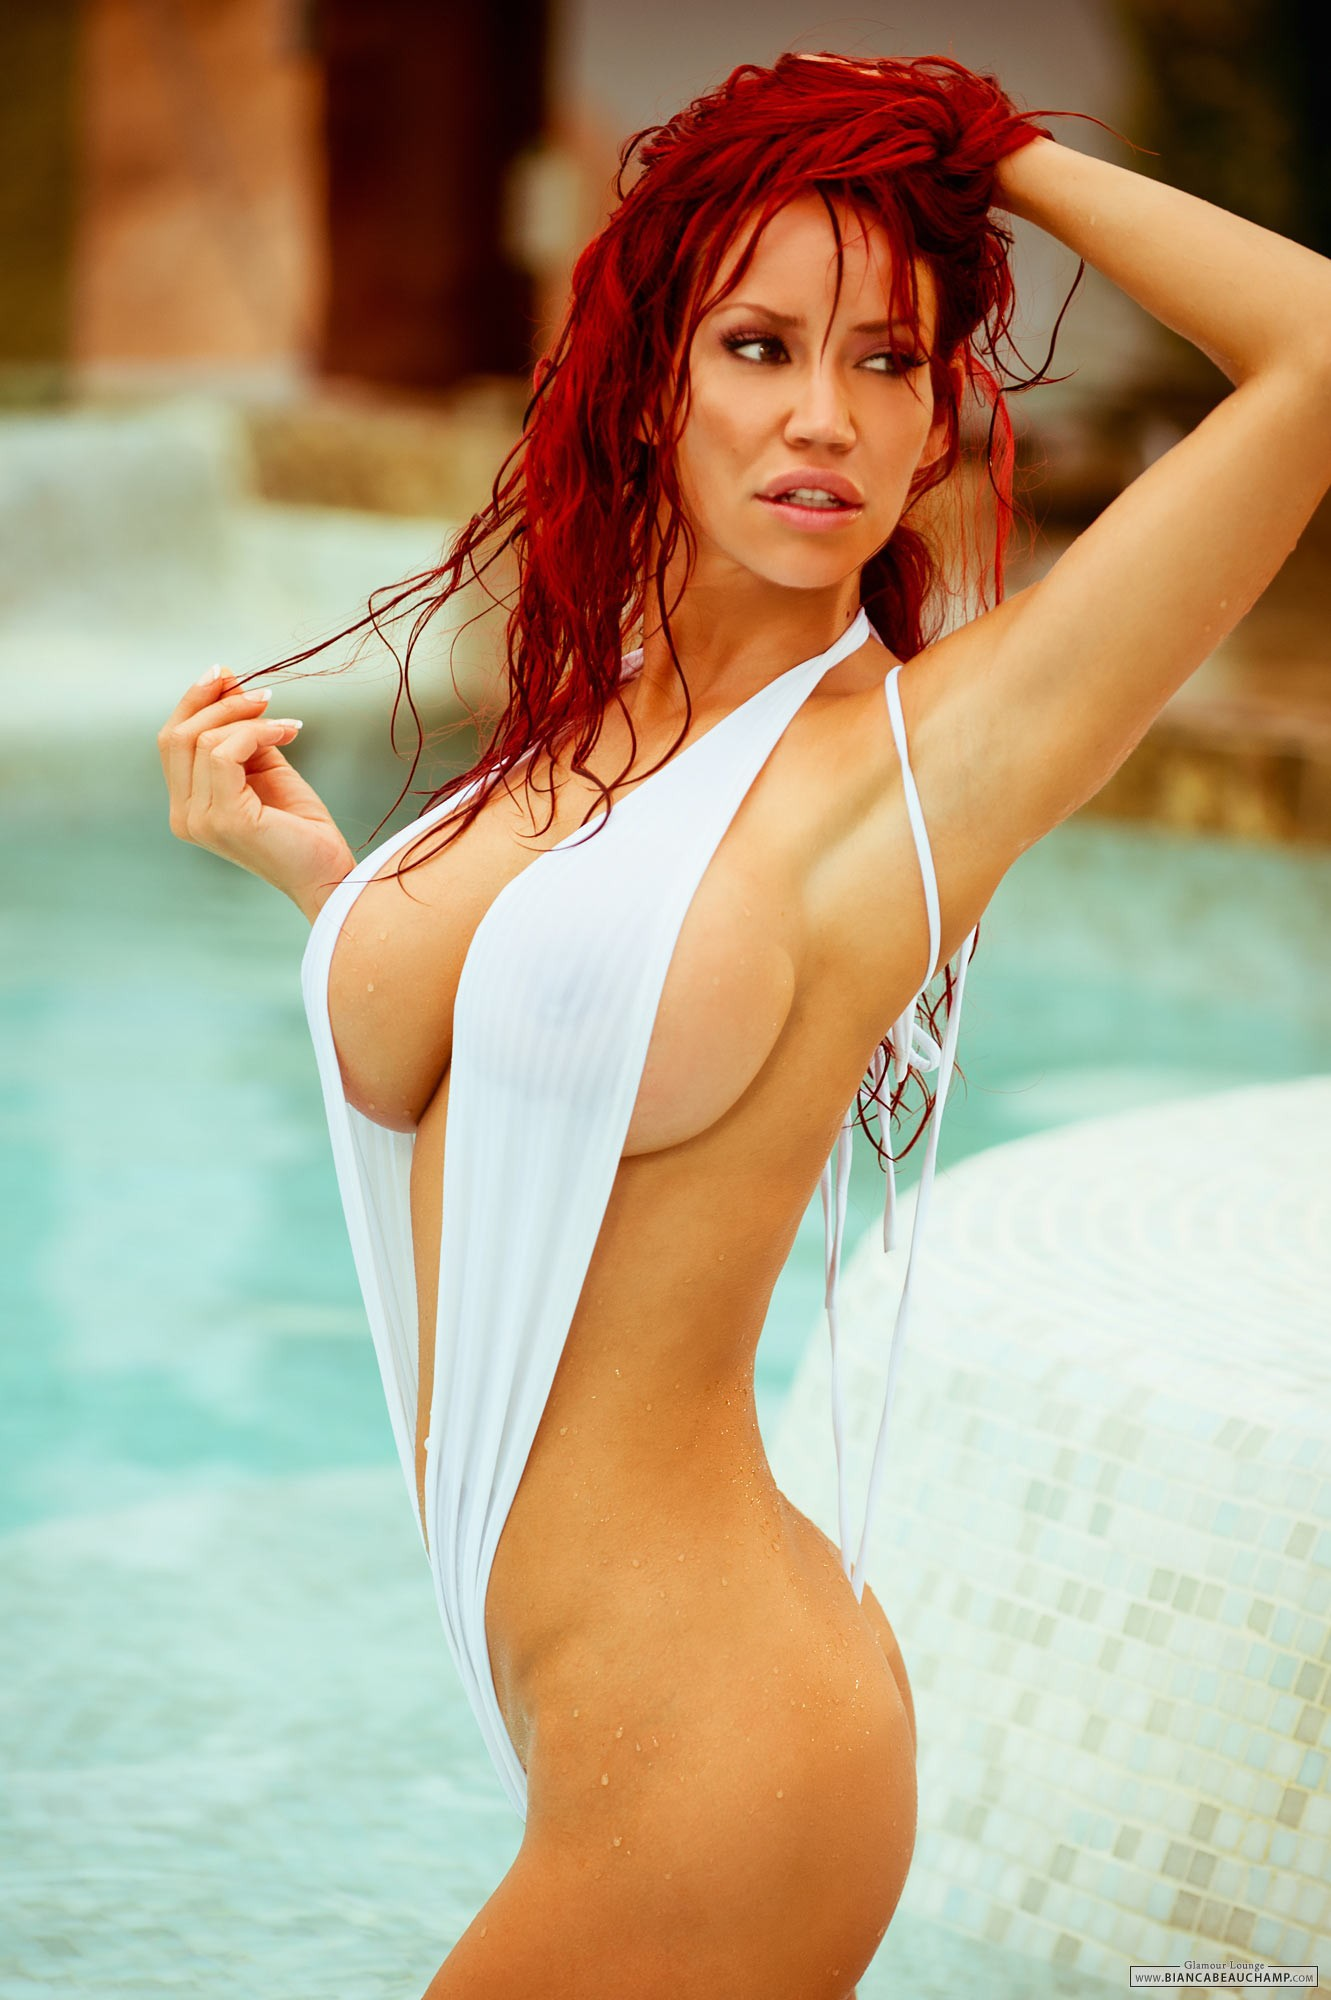 Bianca Beauchamp For Smartphone